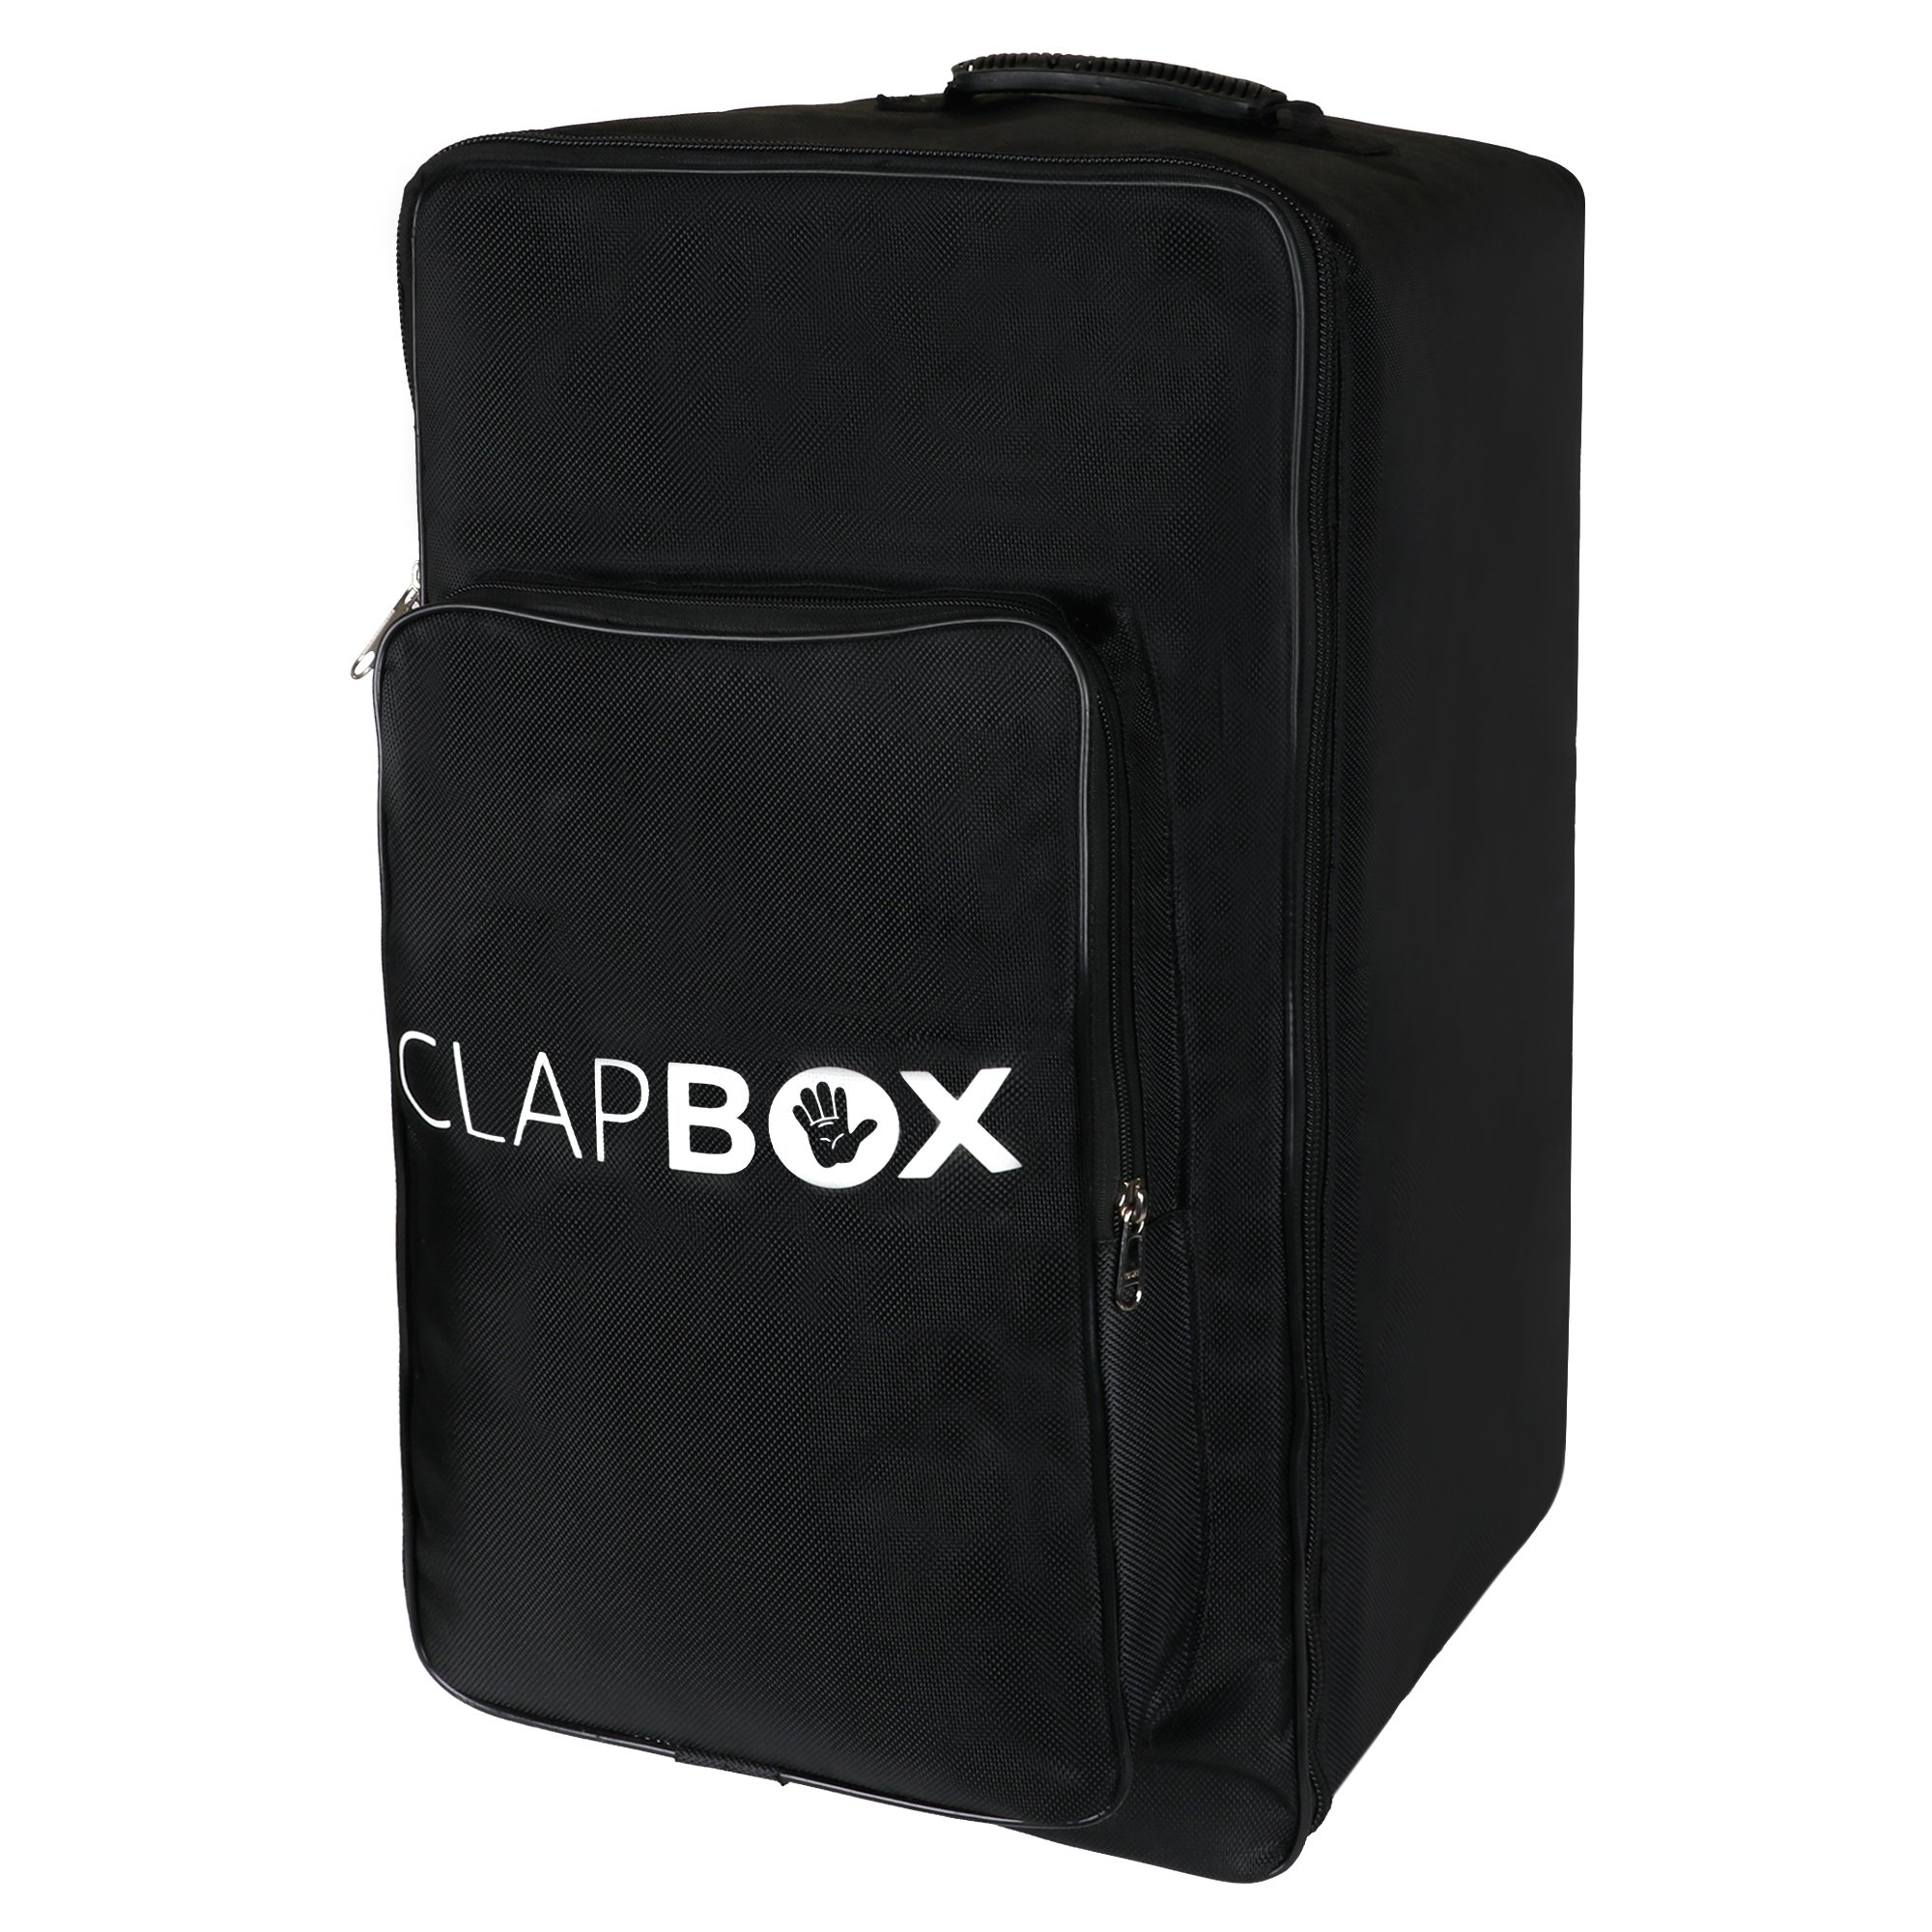 Clapbox Cajon Bag with Carry Handle and Shoulder Straps Universal Size product image